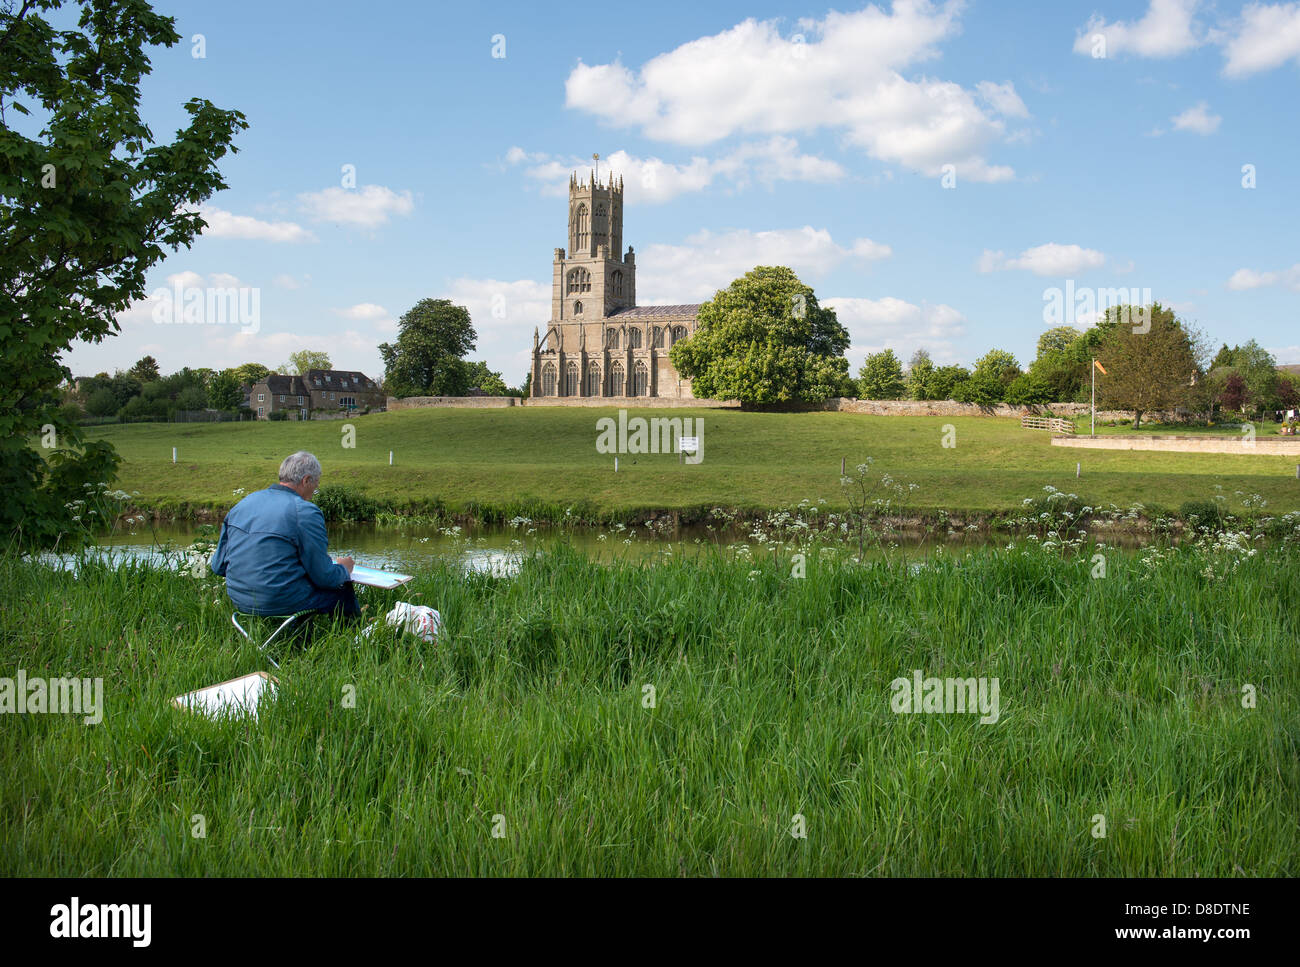 The Church of St Mary and All Saints, Fotheringhay in Northamptonshire with an artist in the foreground painting Stock Photo